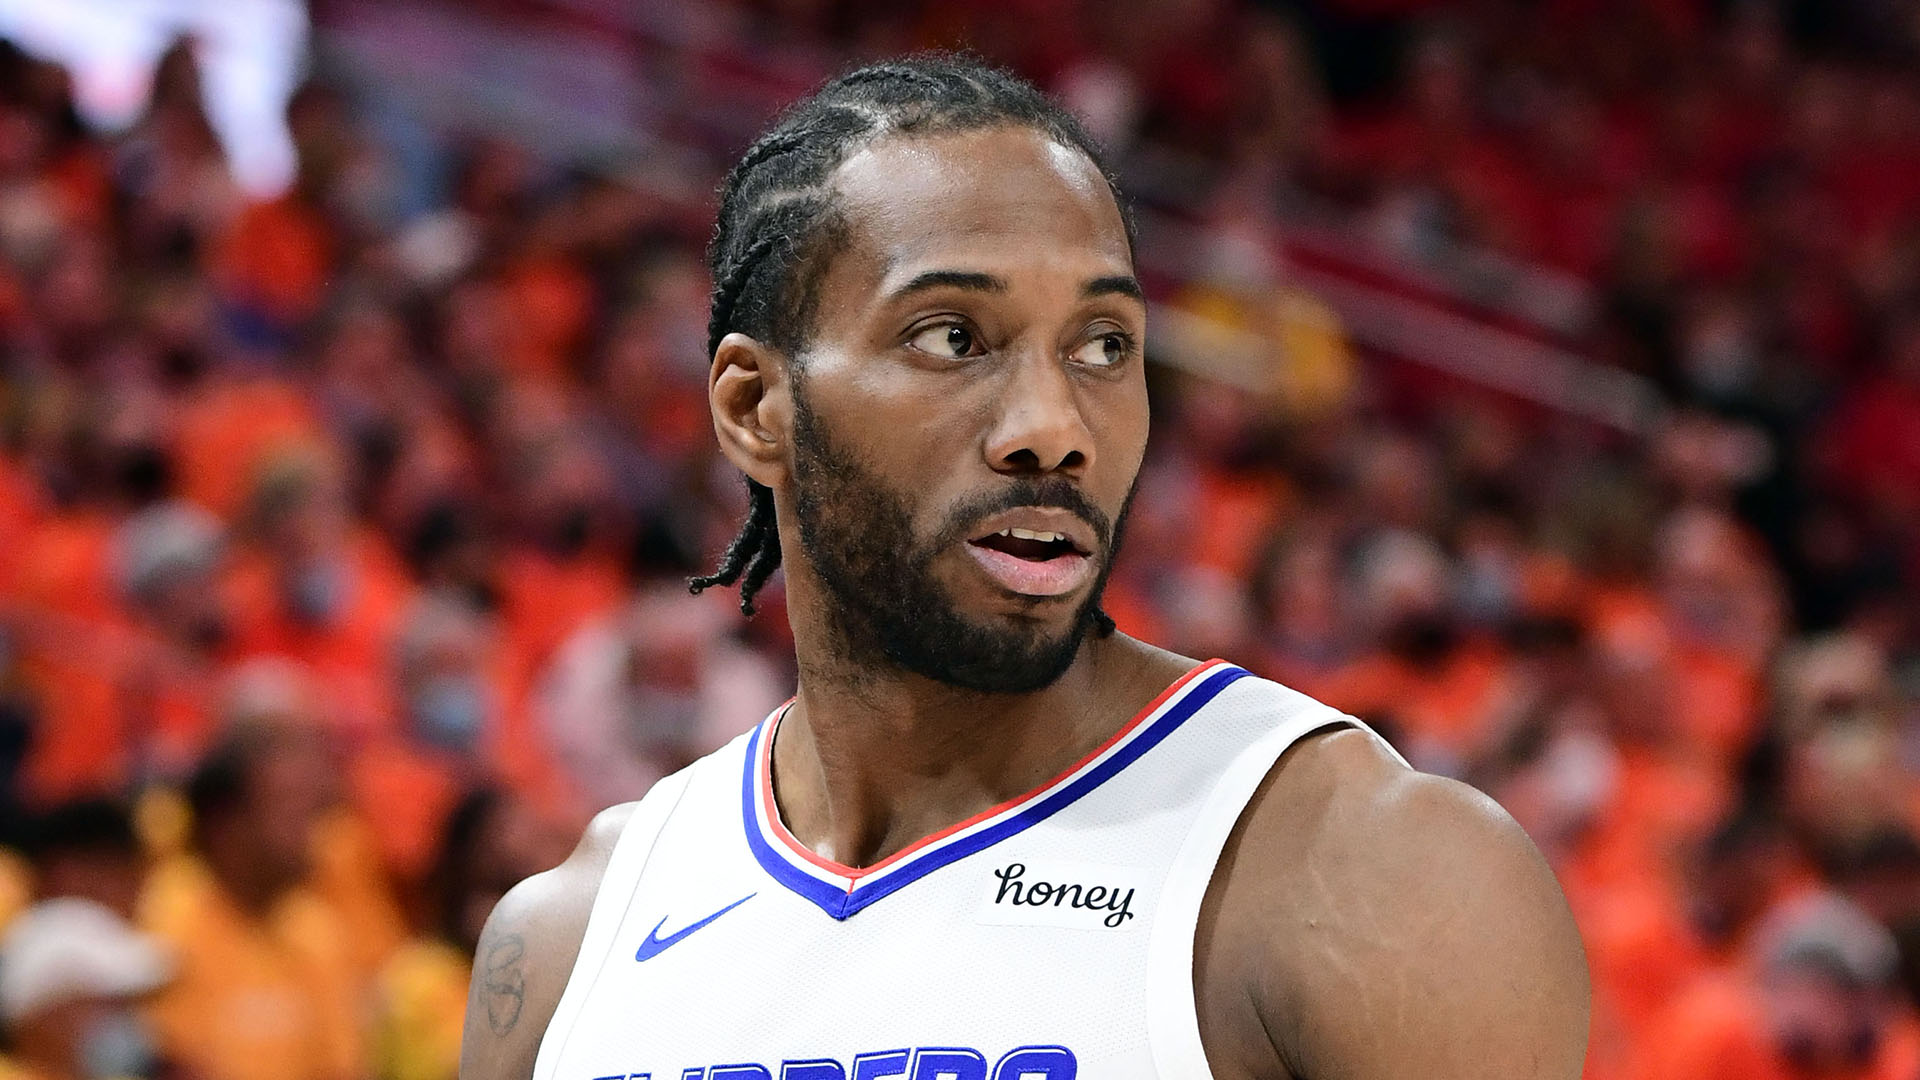 No deal yet as Kawhi continues to weigh options